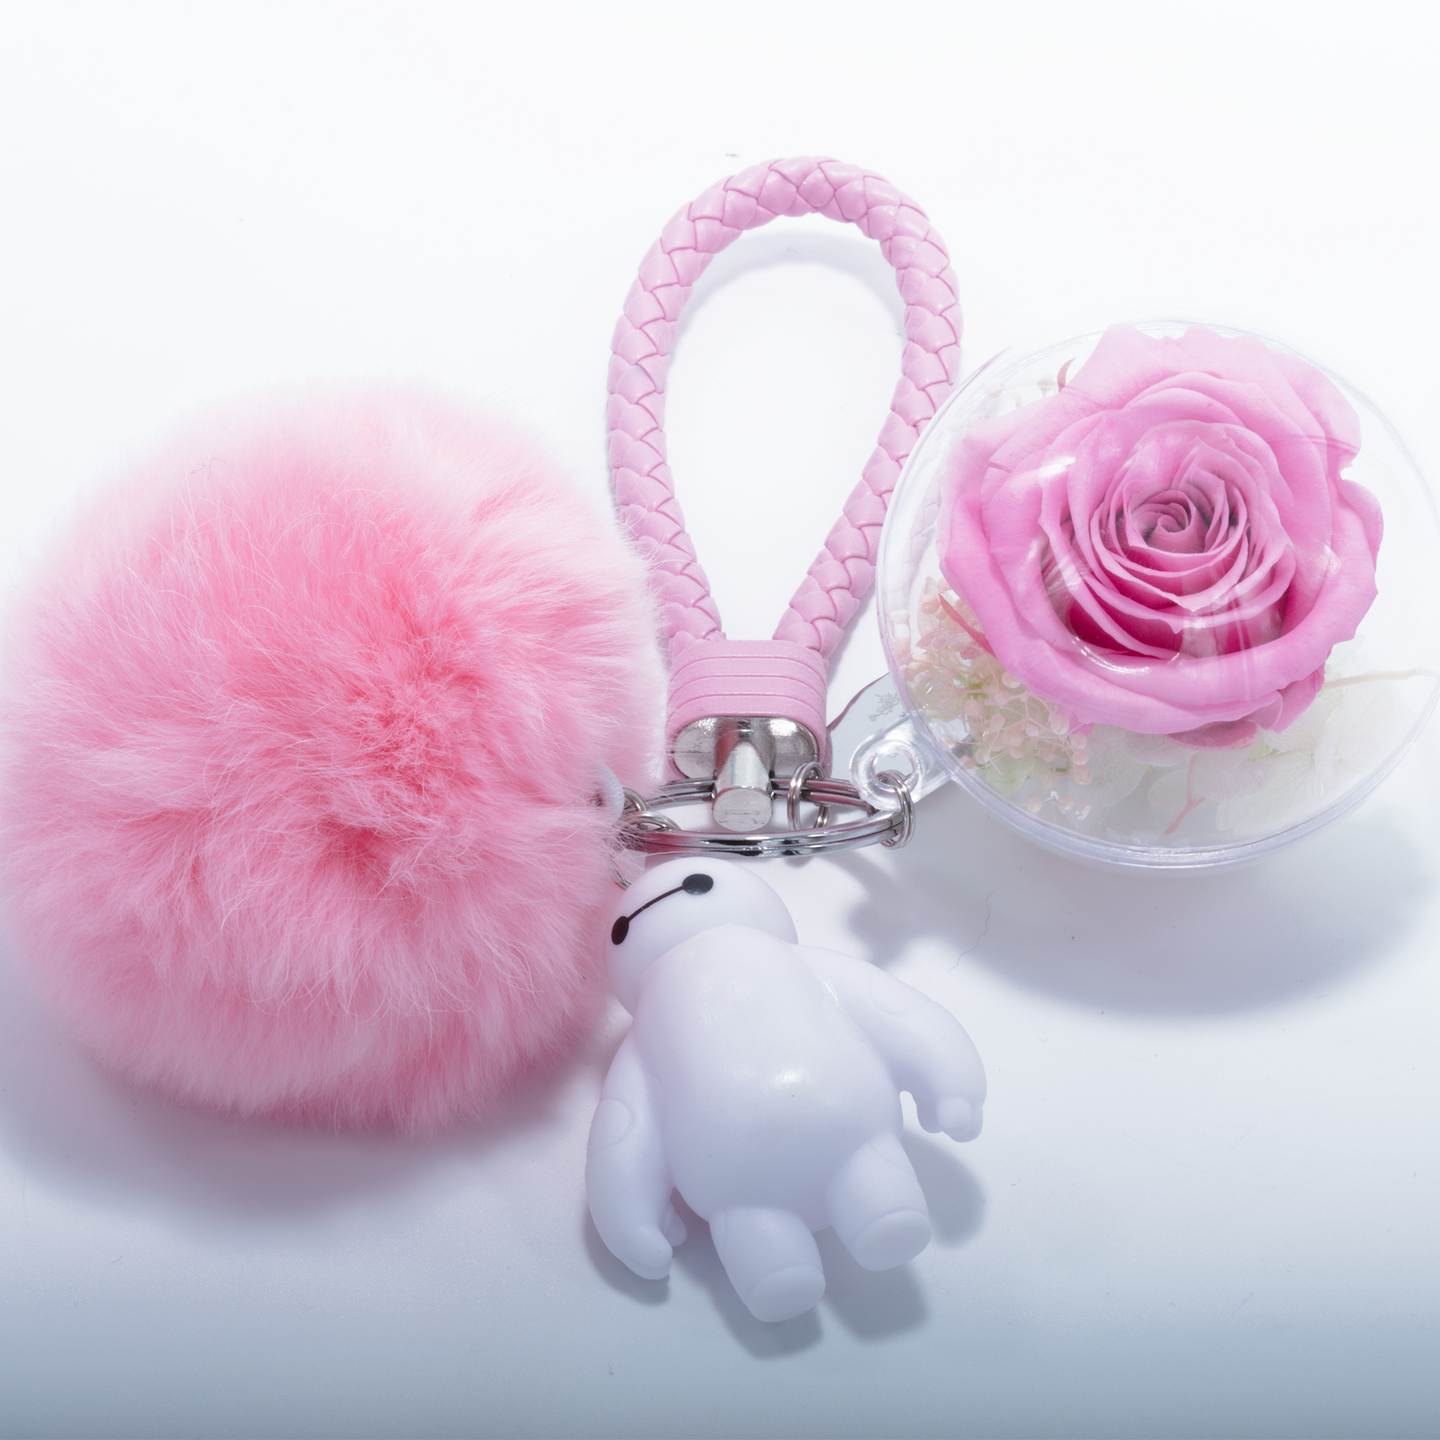 Pink Preserved Rose | Pink Fluffy Ball Keychain - The Only Roses